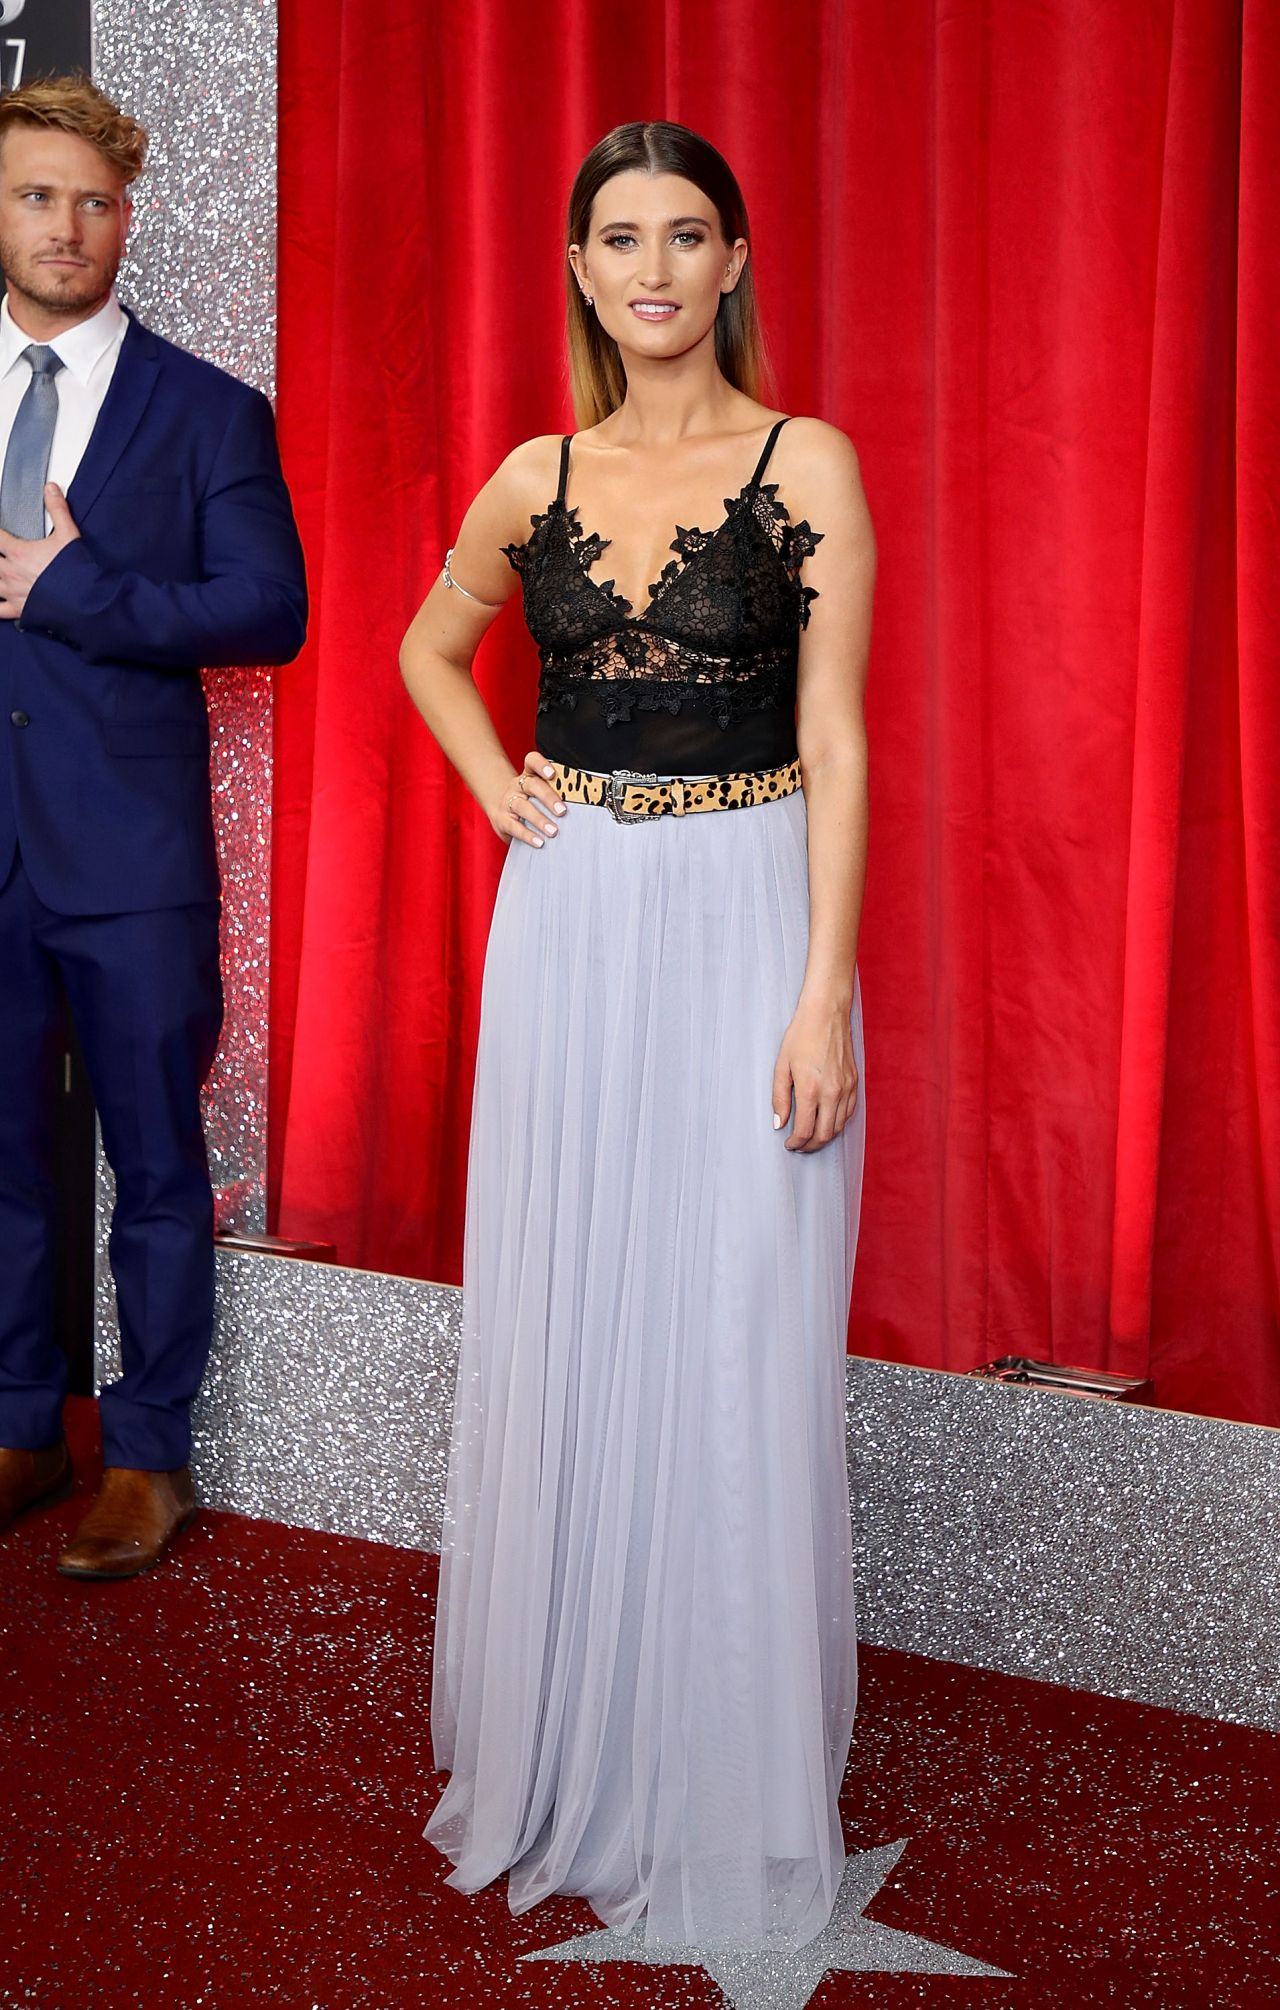 British Soap Awards In Manchester, UK 06/03